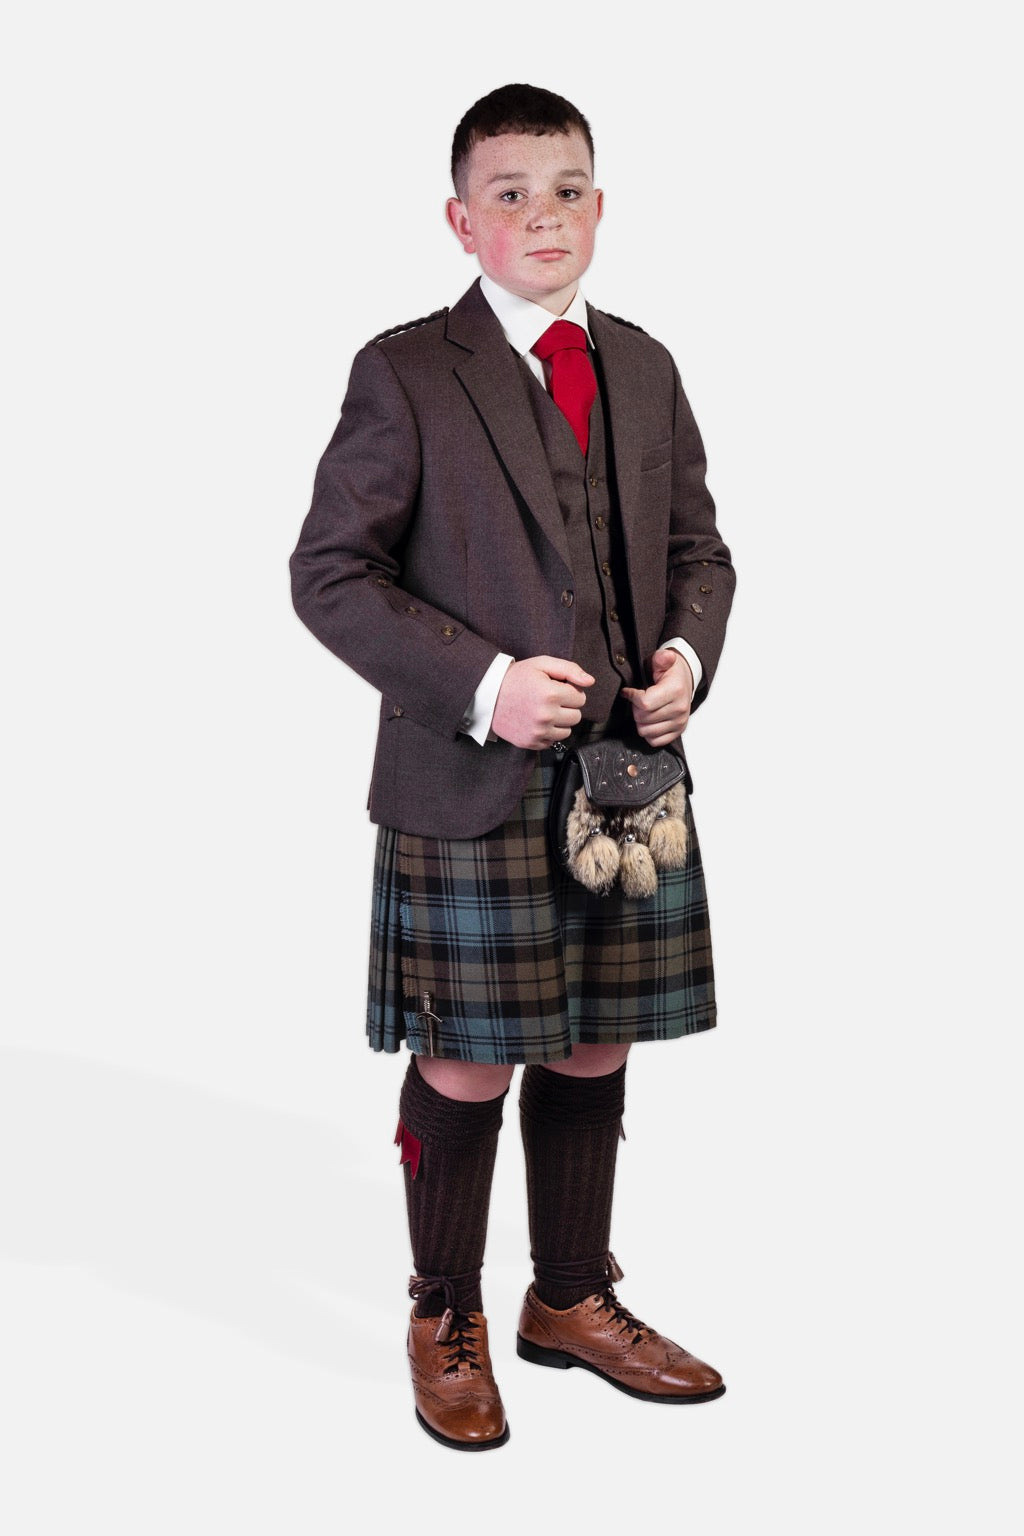 Children's Peat Holyrood Hire Outfit